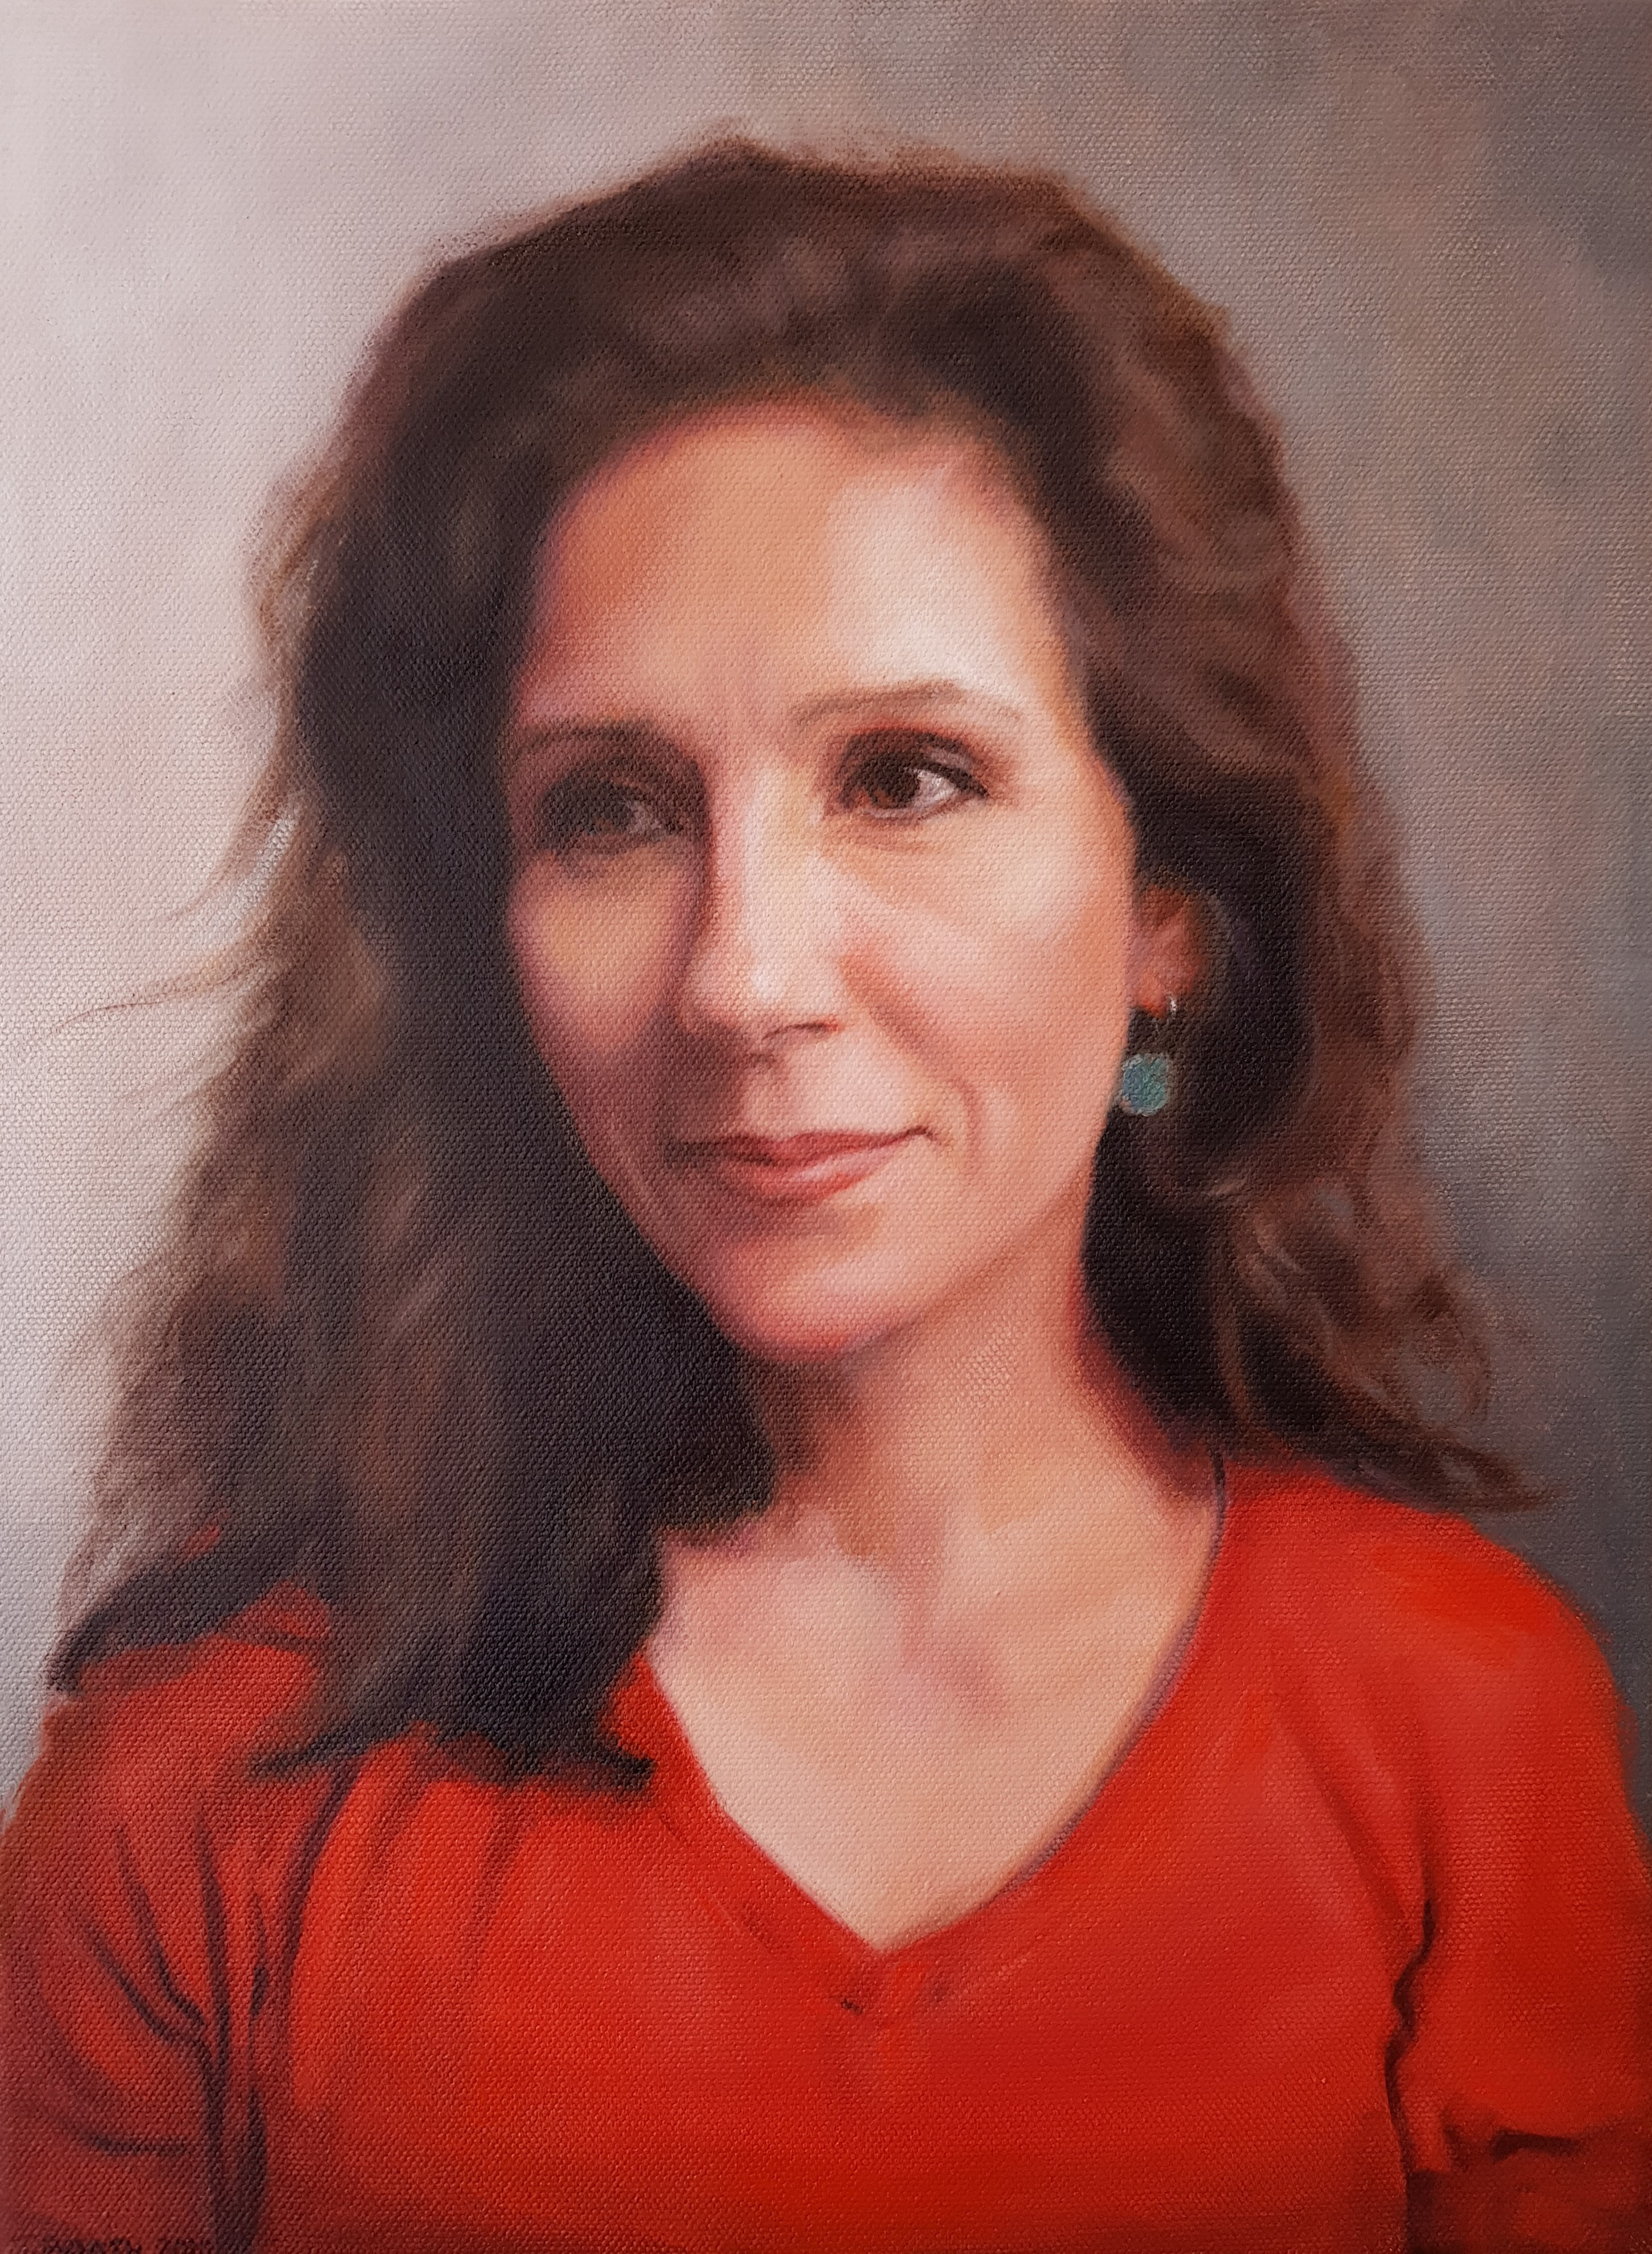 """Belinda"", commissioned portrait, oil on canvas, 30x40cm, SOLD"